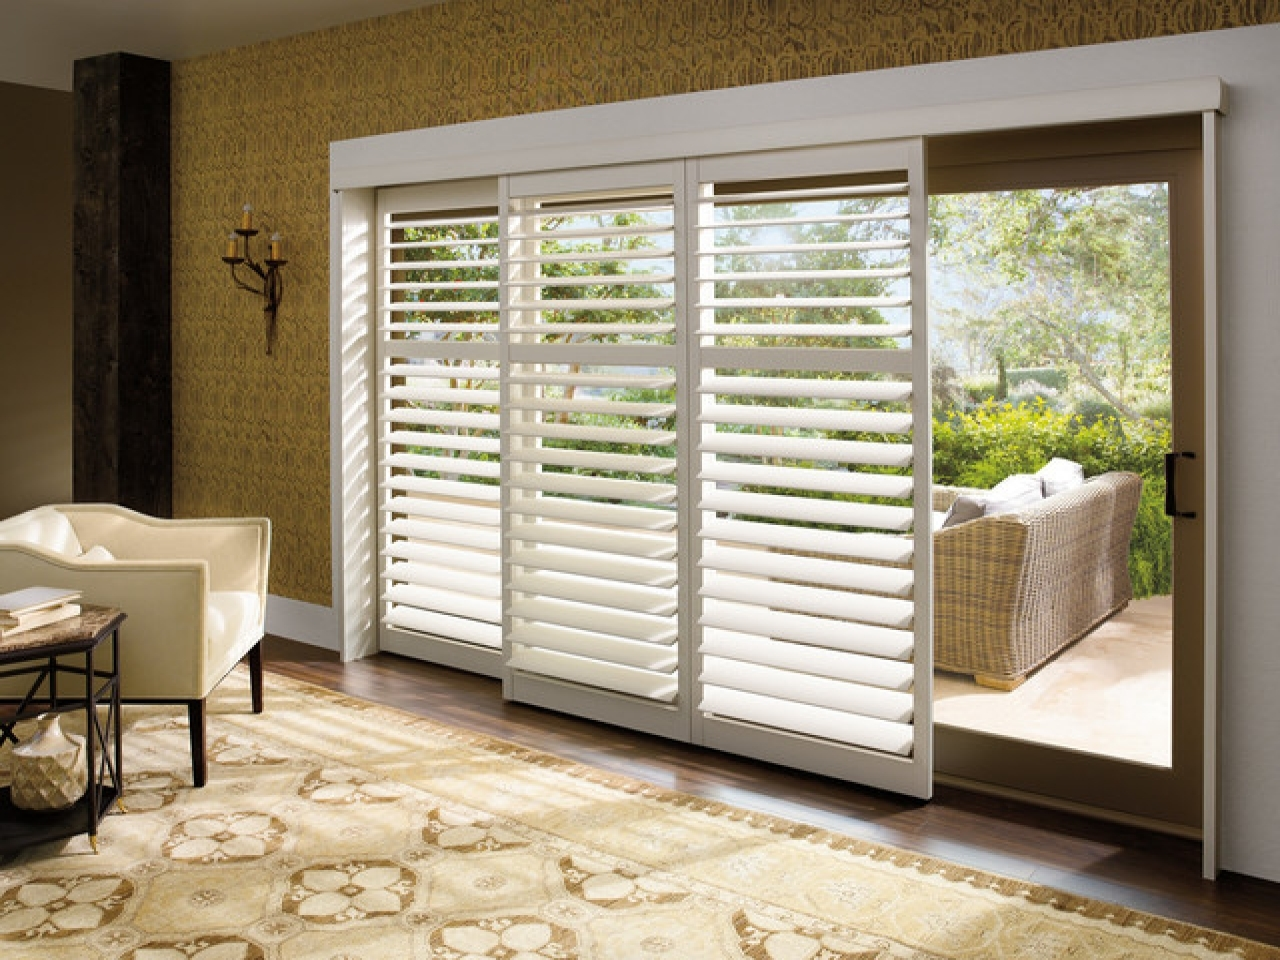 Security Covers For Sliding Glass Doorswindow treatments for sliding glass doors ideas tips